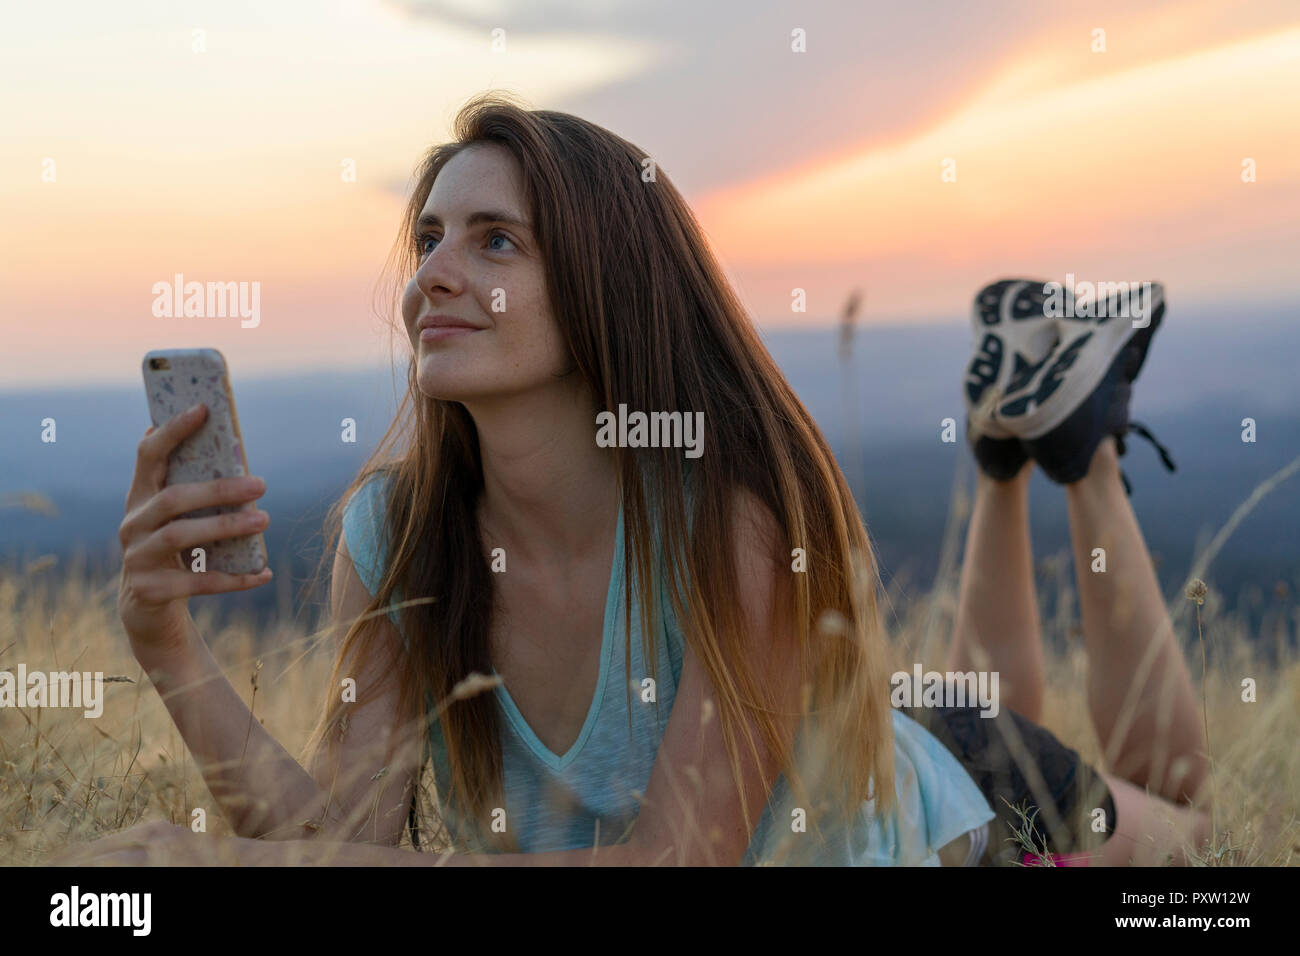 Smiling young woman with cell phone lying in grass during sunset - Stock Image